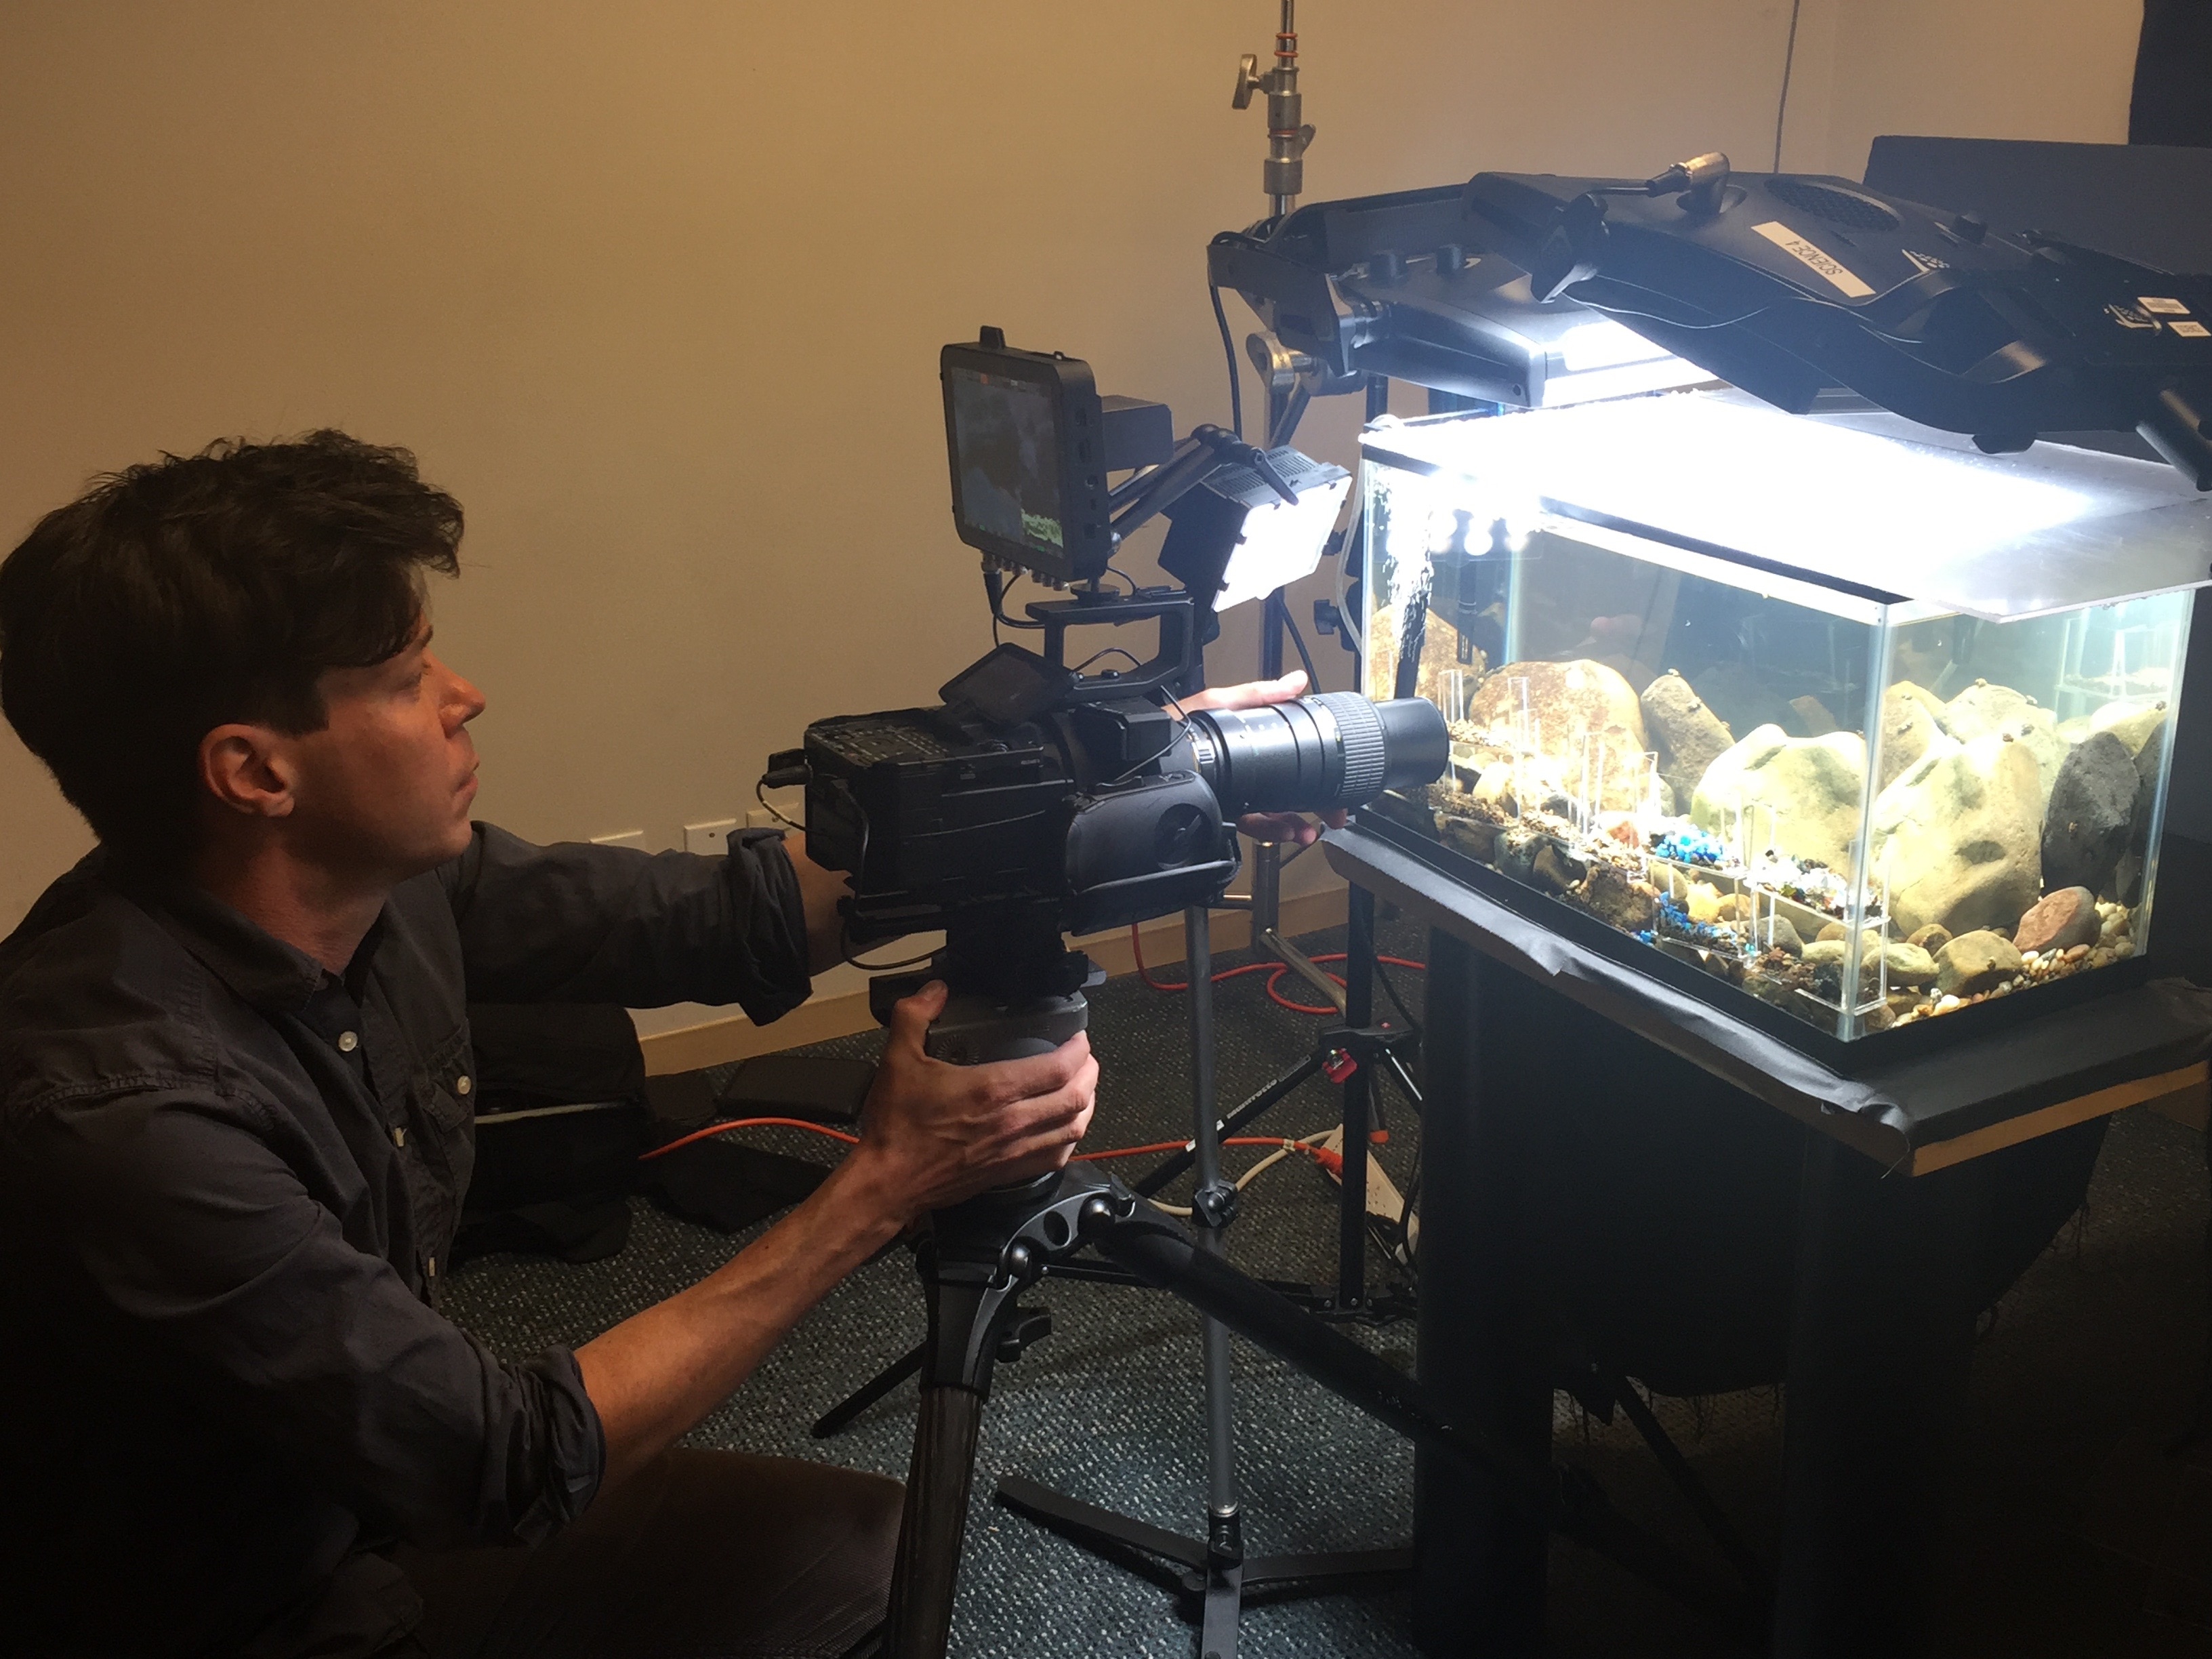 Man films caddisfly aquarium.